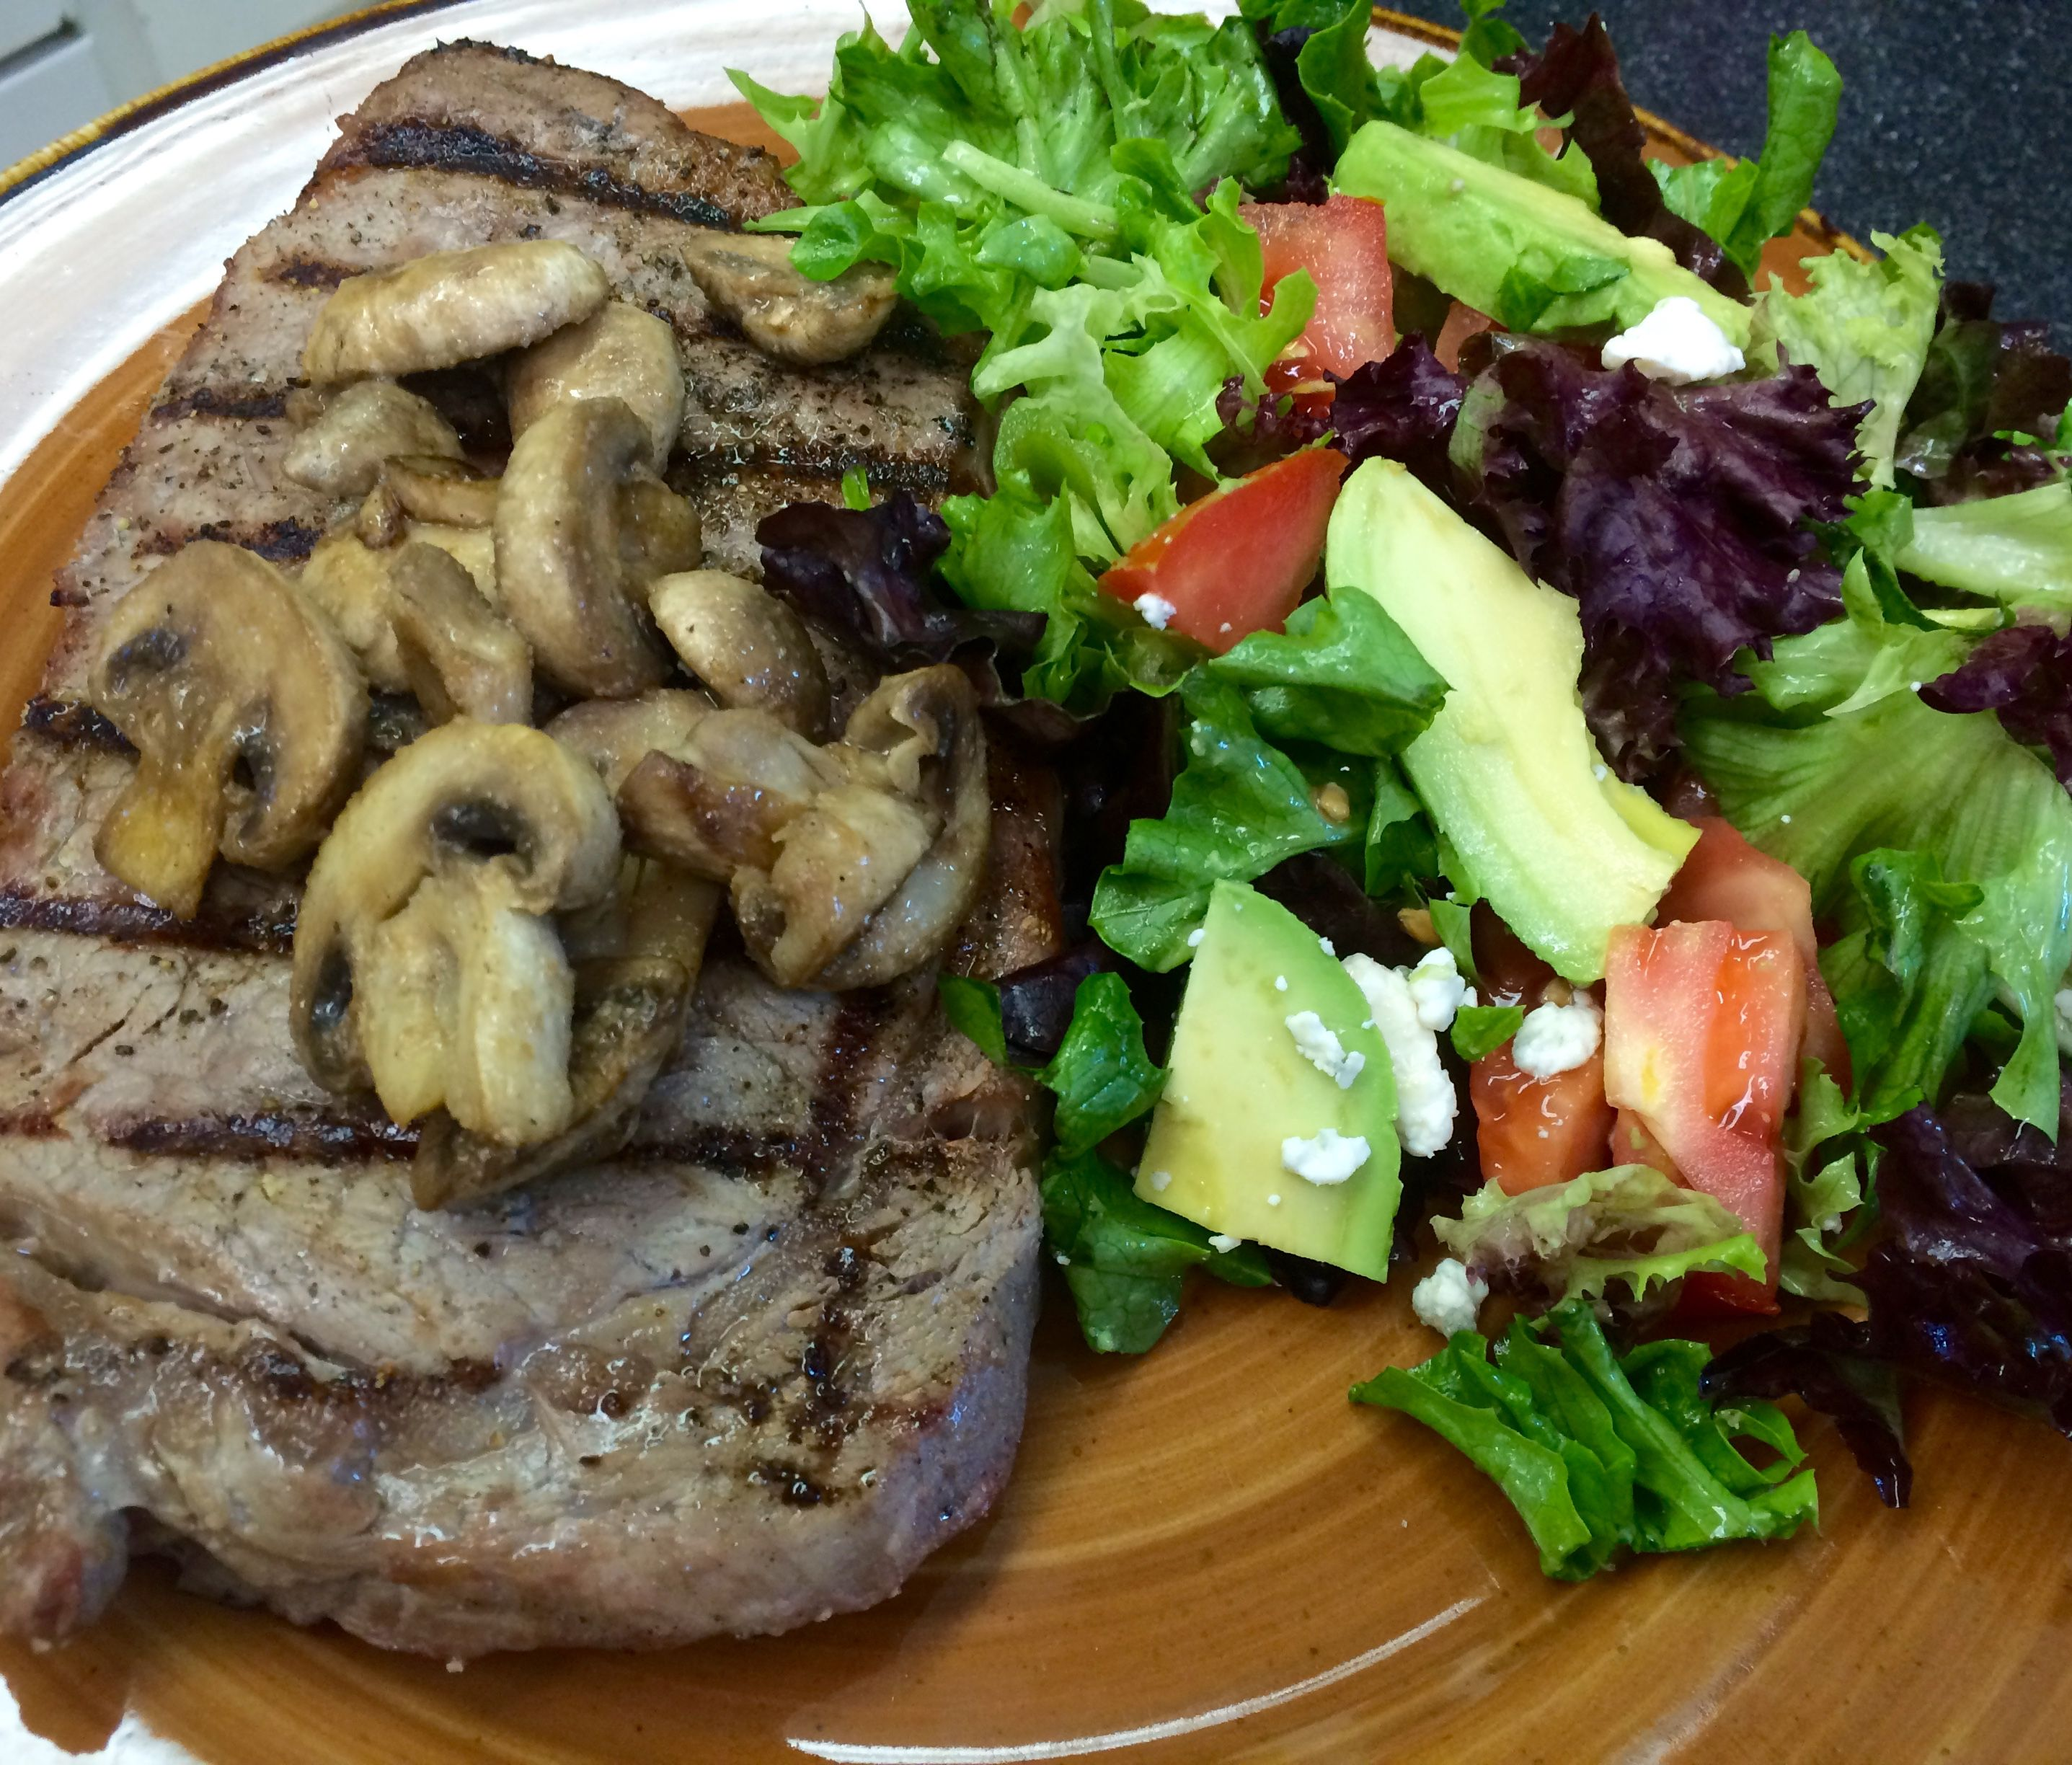 Flame Grilled Steak, mushrooms and fresh locally sourced veggie salad